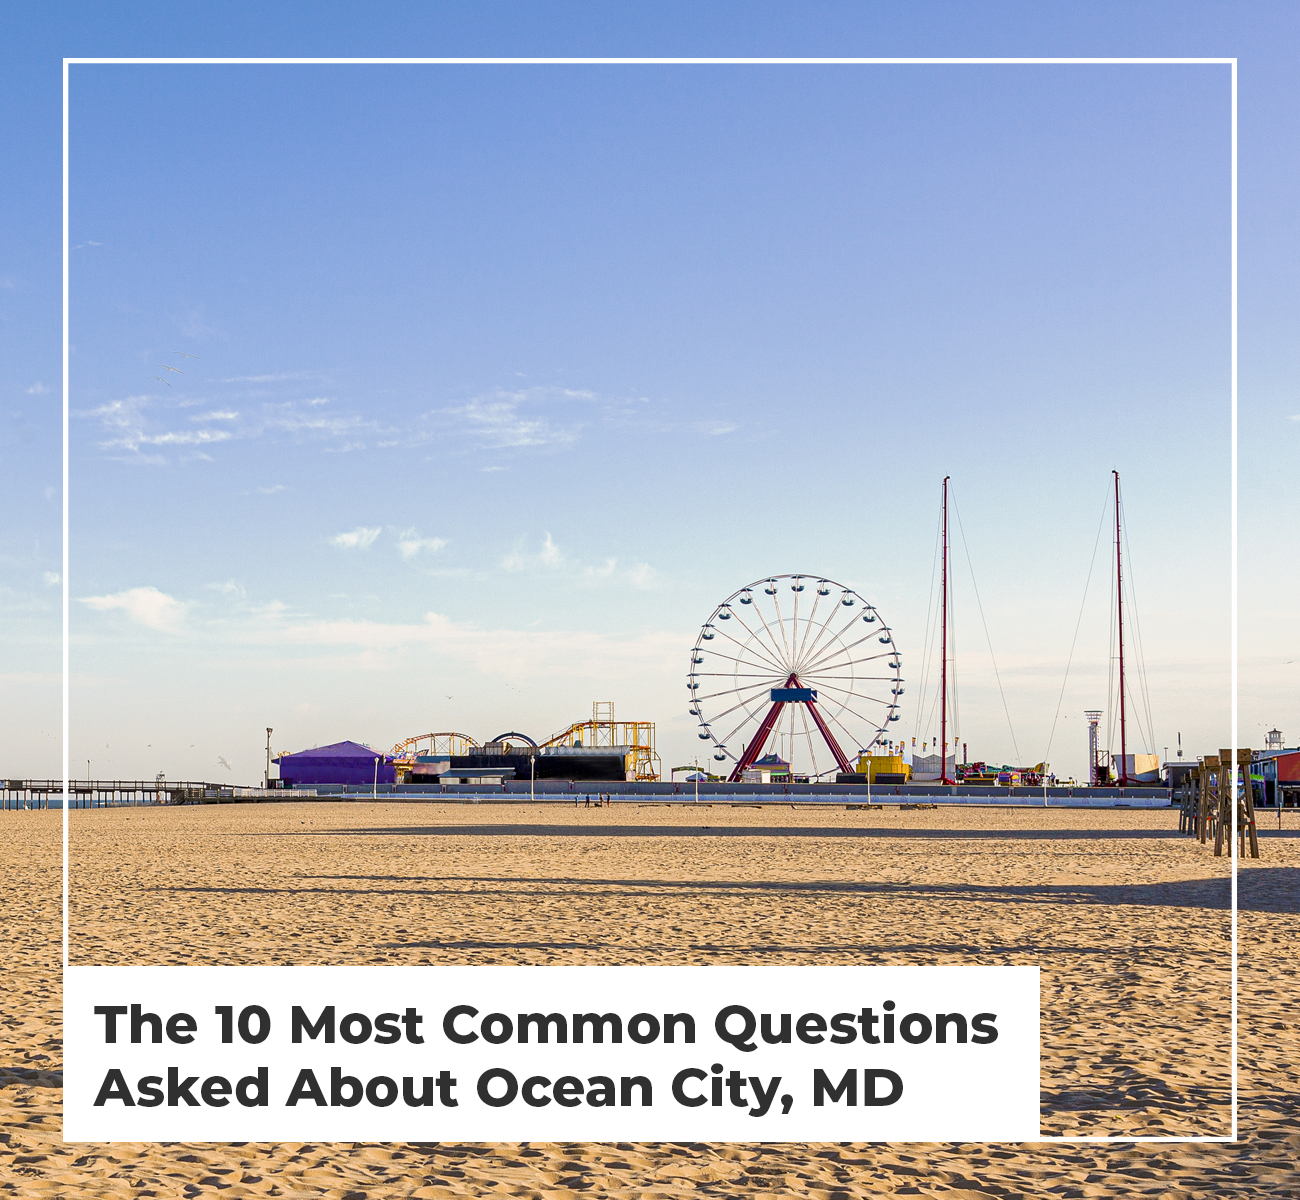 Most Common Questions in Ocean City, MD